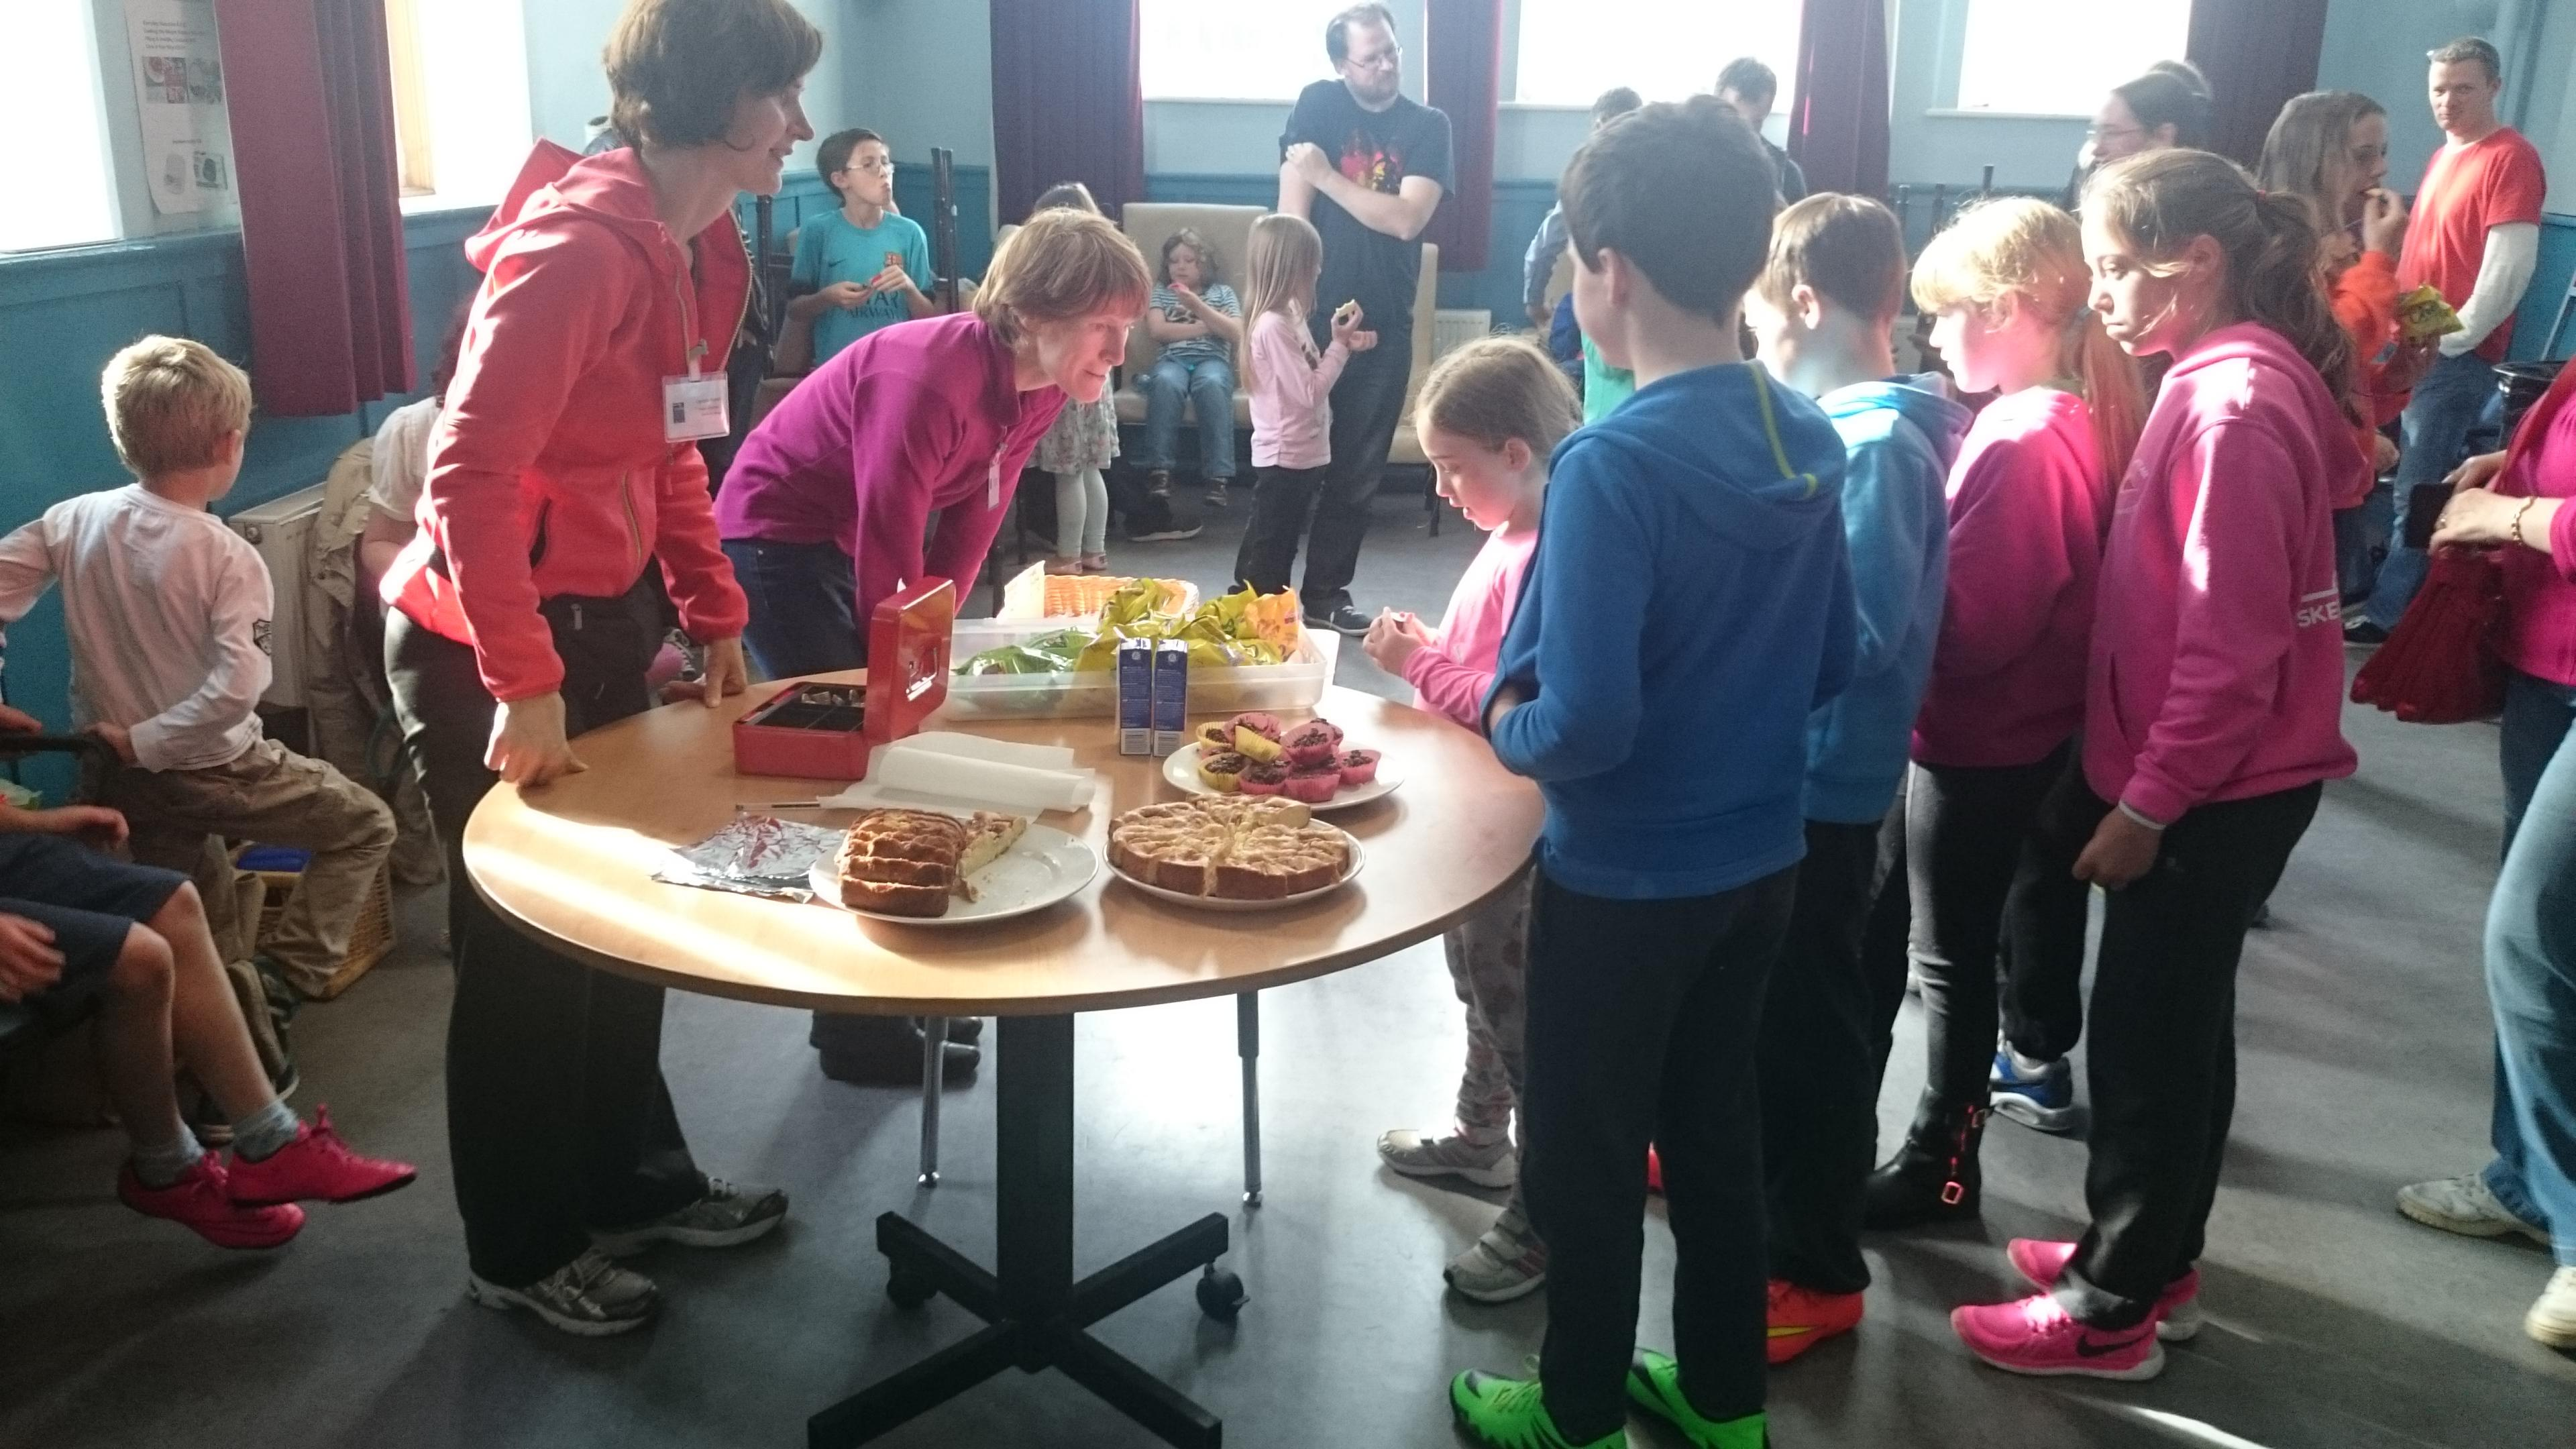 Mentors and Helpers: Sunday 22nd April 2018: Skerries CoderDojo: The Little Theatre 3 p.m. to 6 p.m.